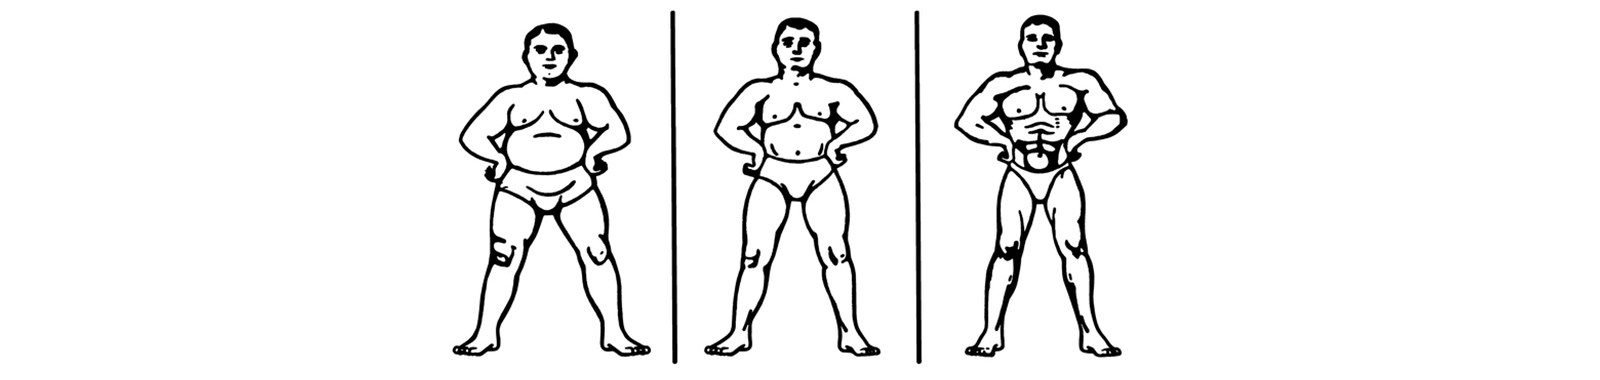 Three Stages of One Man's Muscle Progression